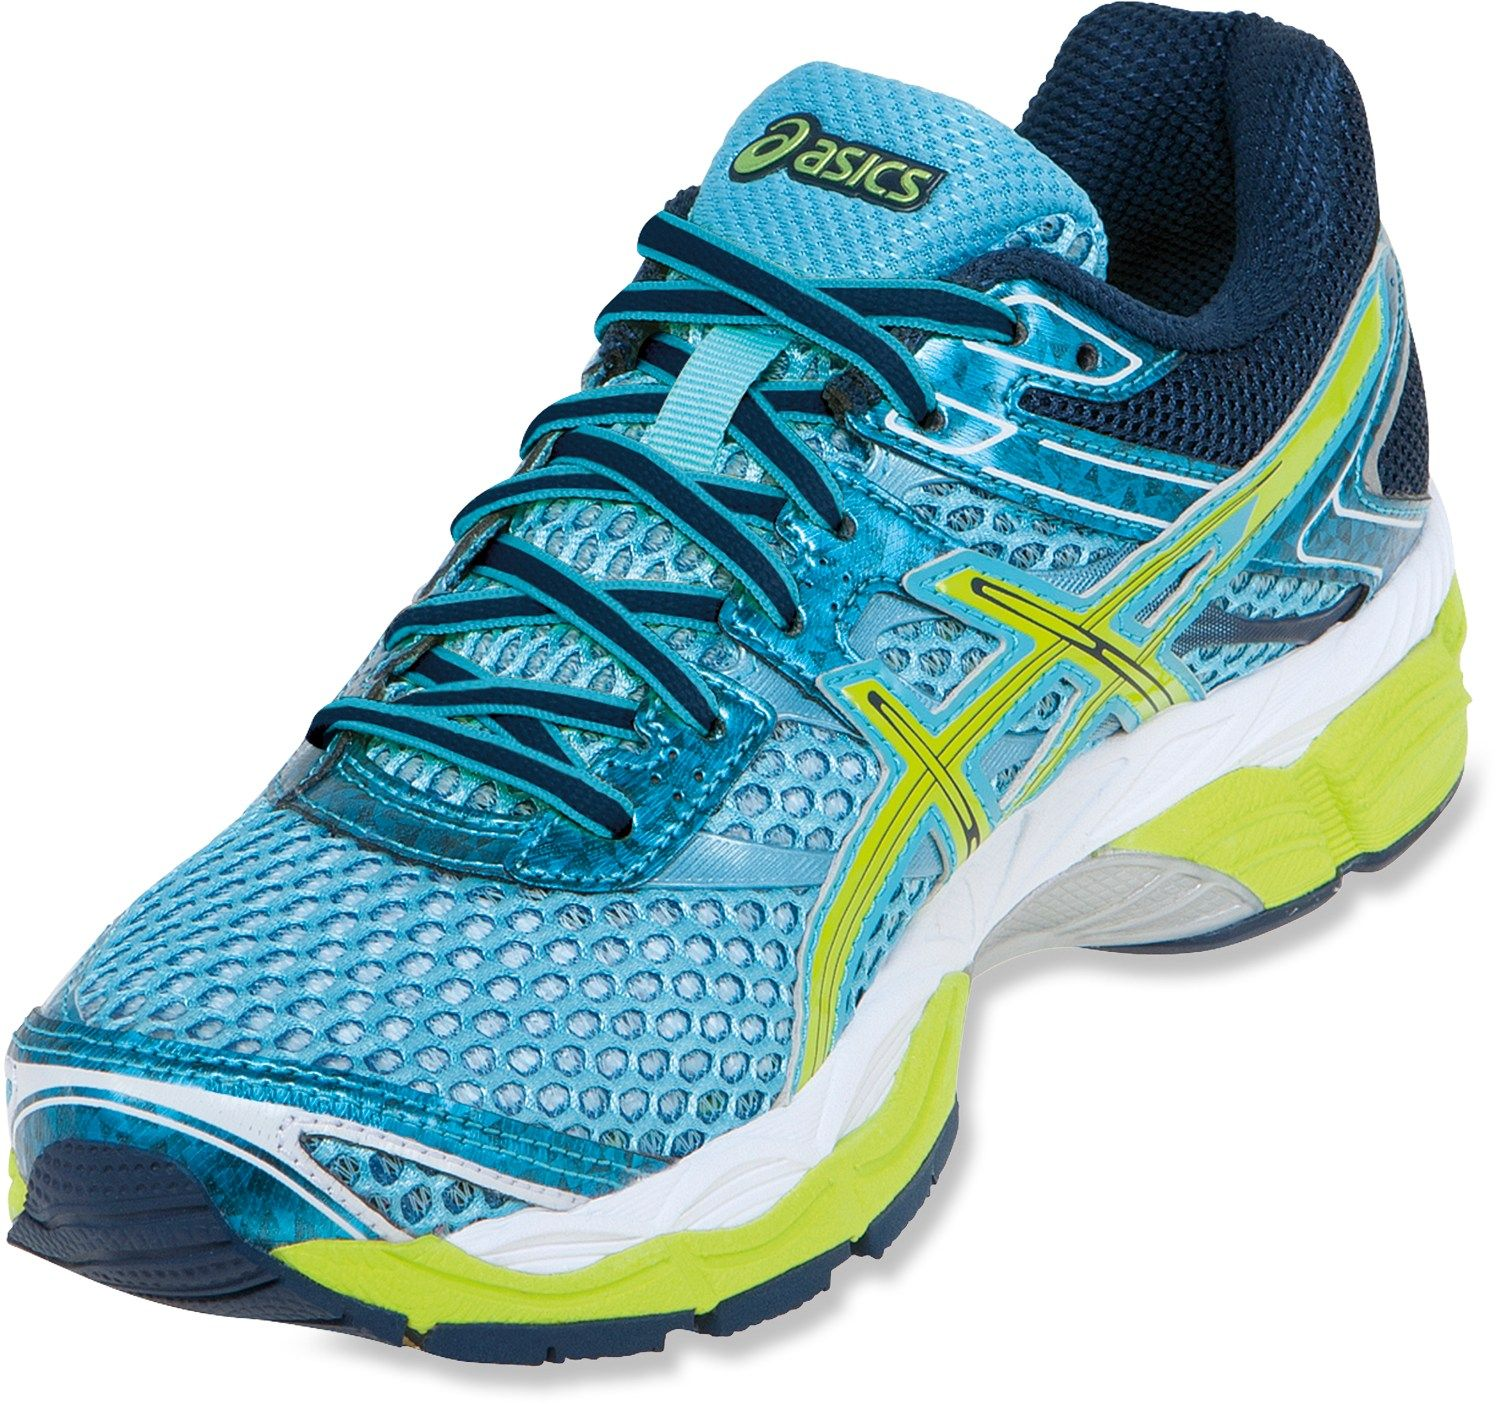 Co Op Gel Women'sRei Cumulus 16 Running Shoes Asics Road ukZPXOi